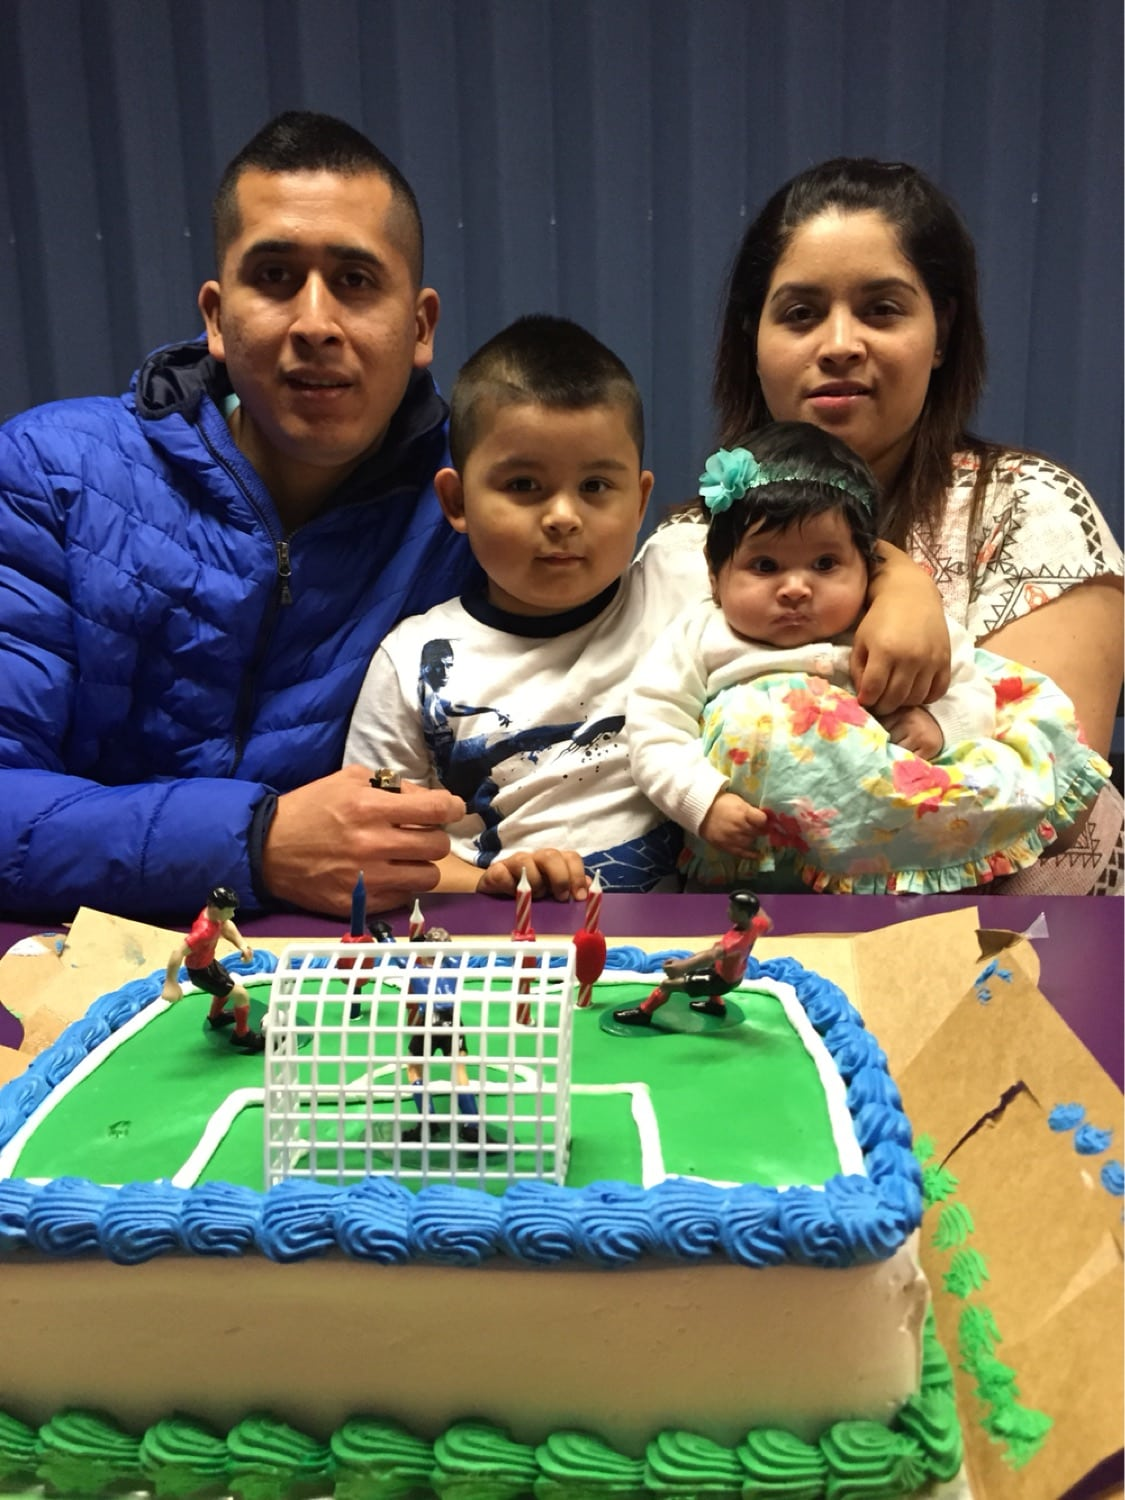 Manuel with his family